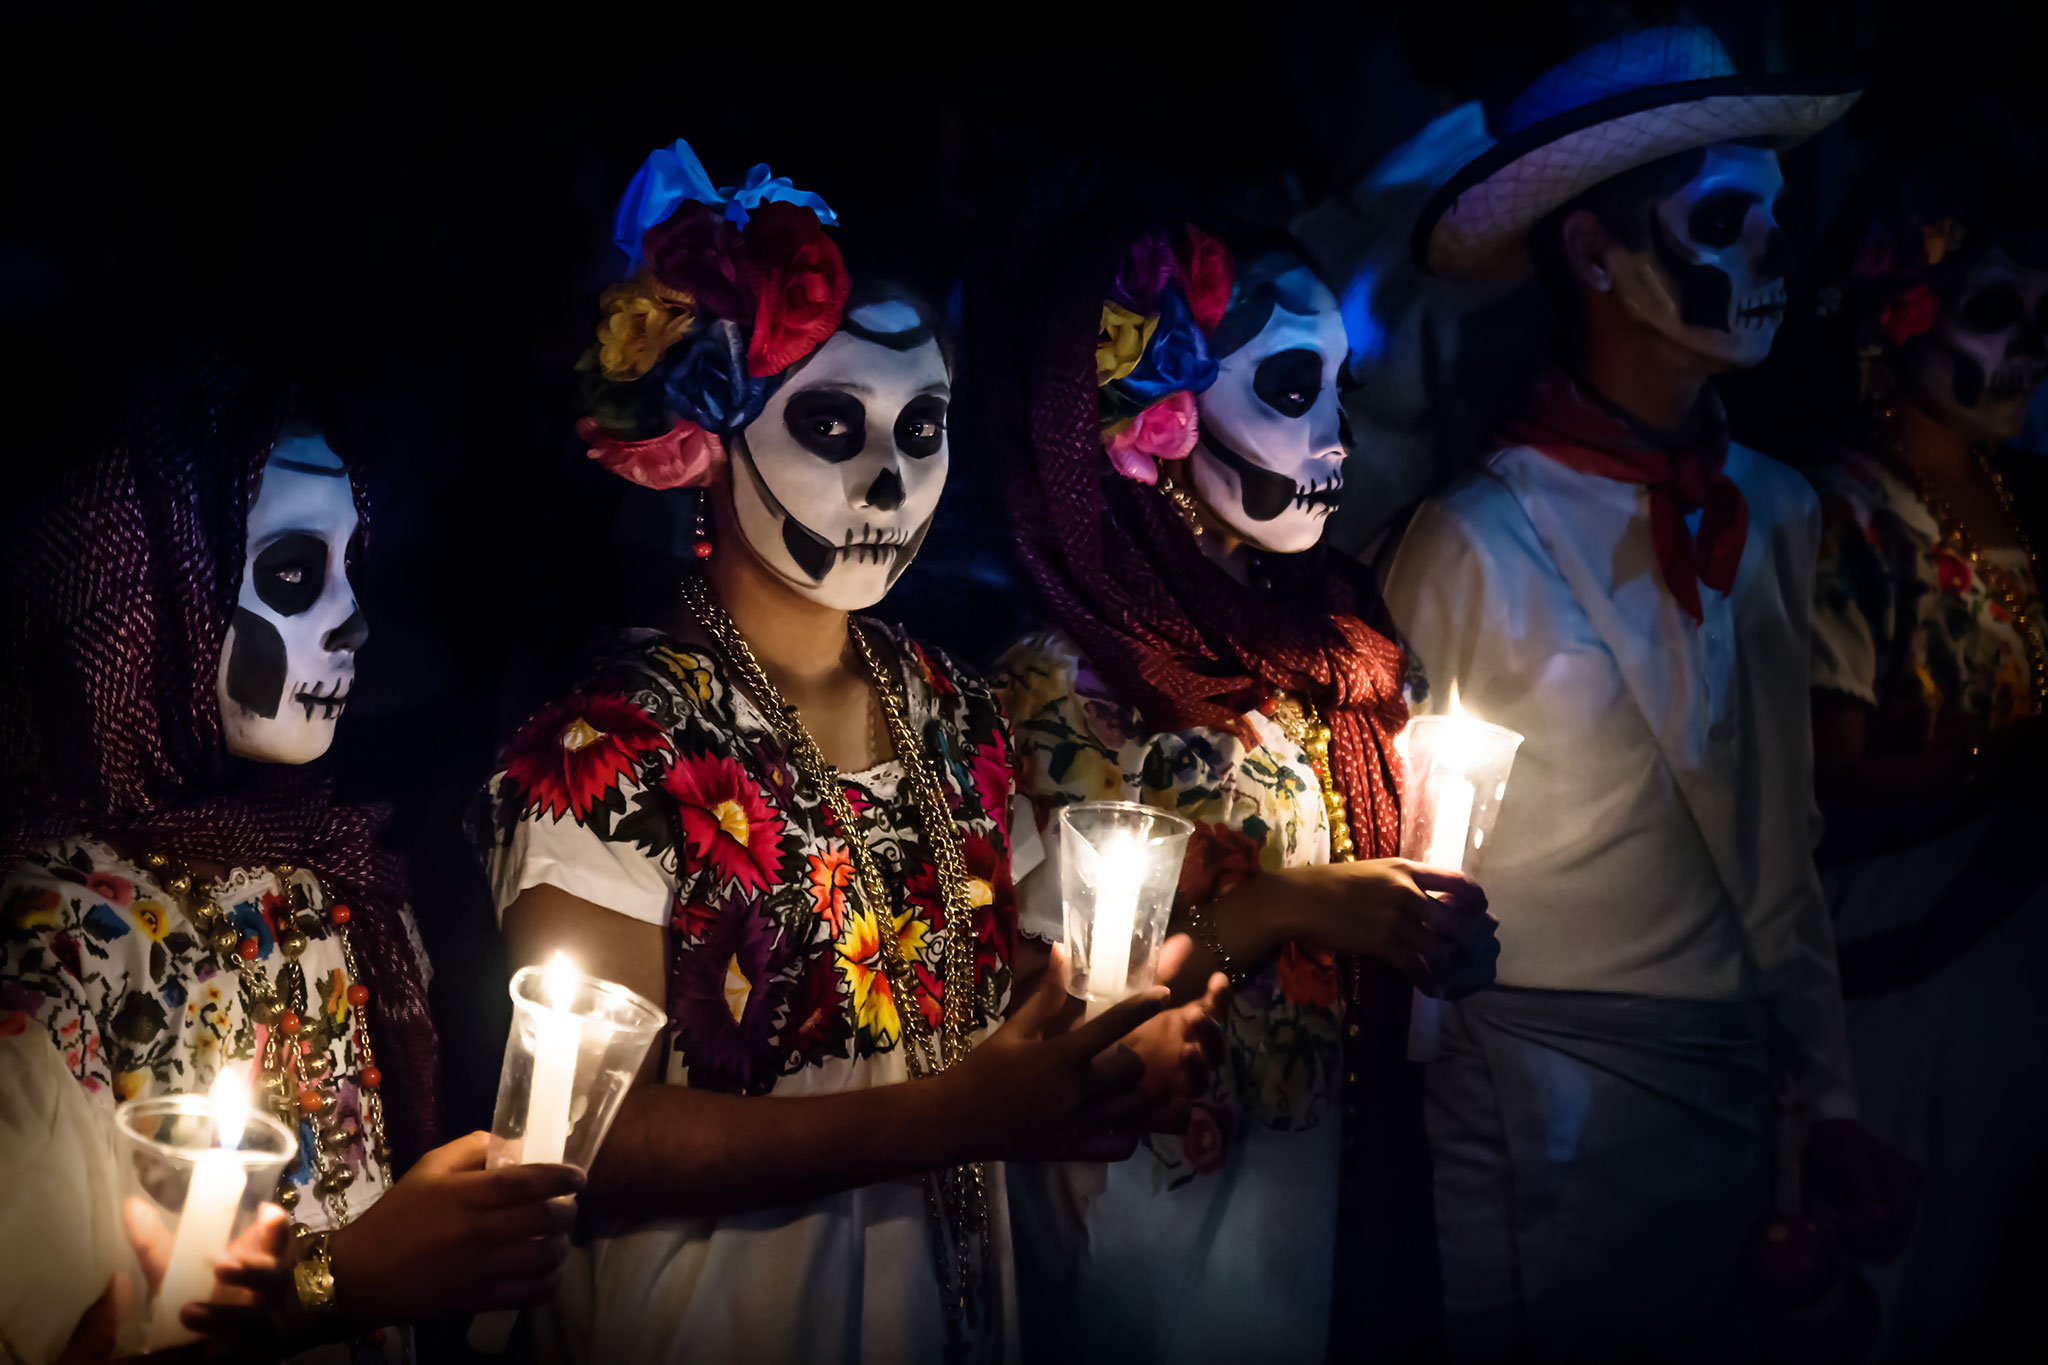 Here's what to know about Day of the Dead